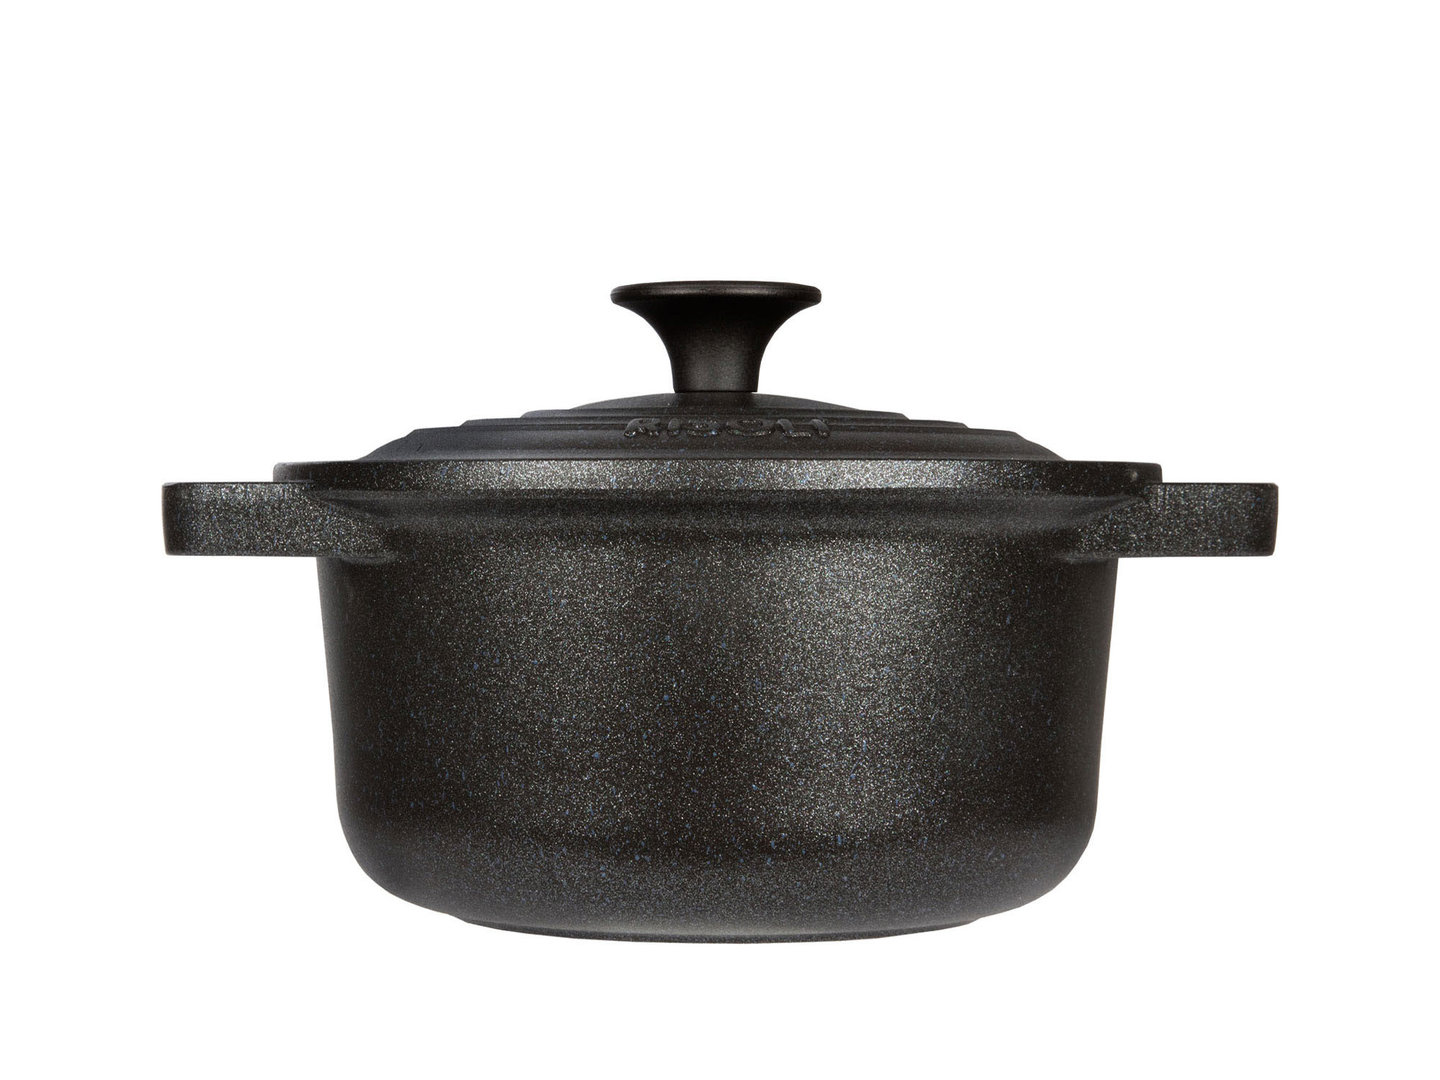 RISOLI cast aluminum casserole LE PIGNATTE 20 cm cocotte round induction with glass lid